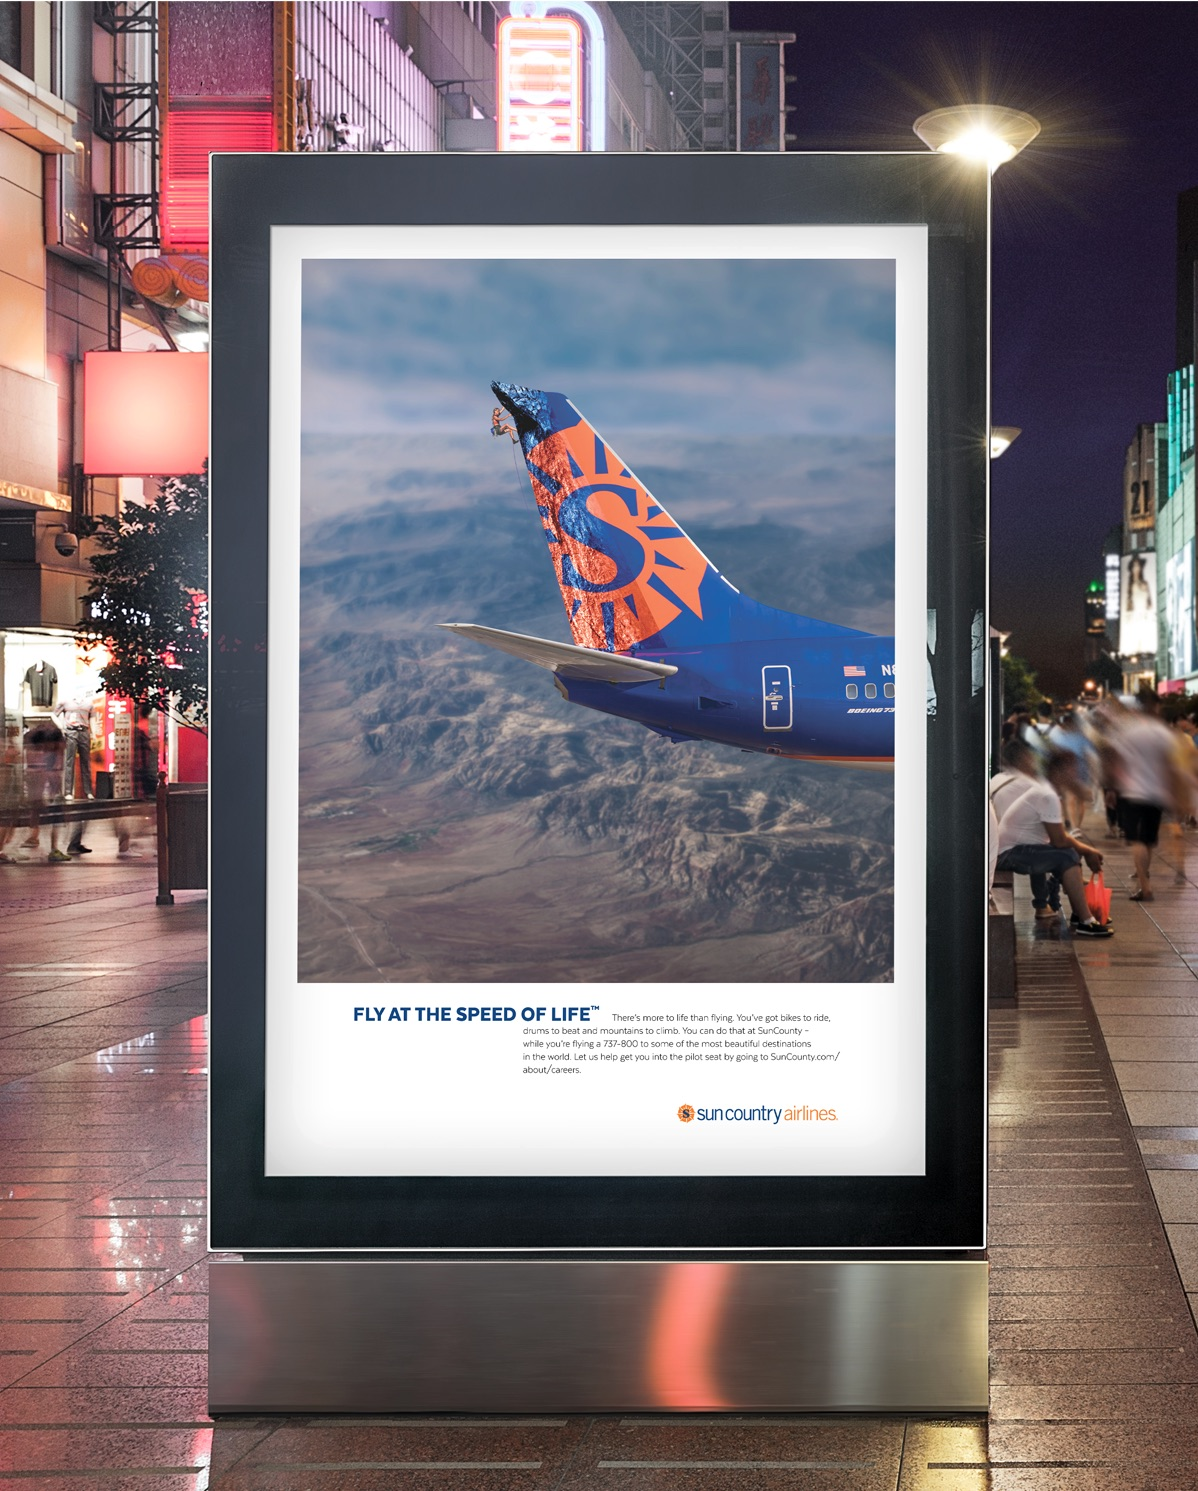 Sun Country Airlines Fly at the speed of life campaign billboard design